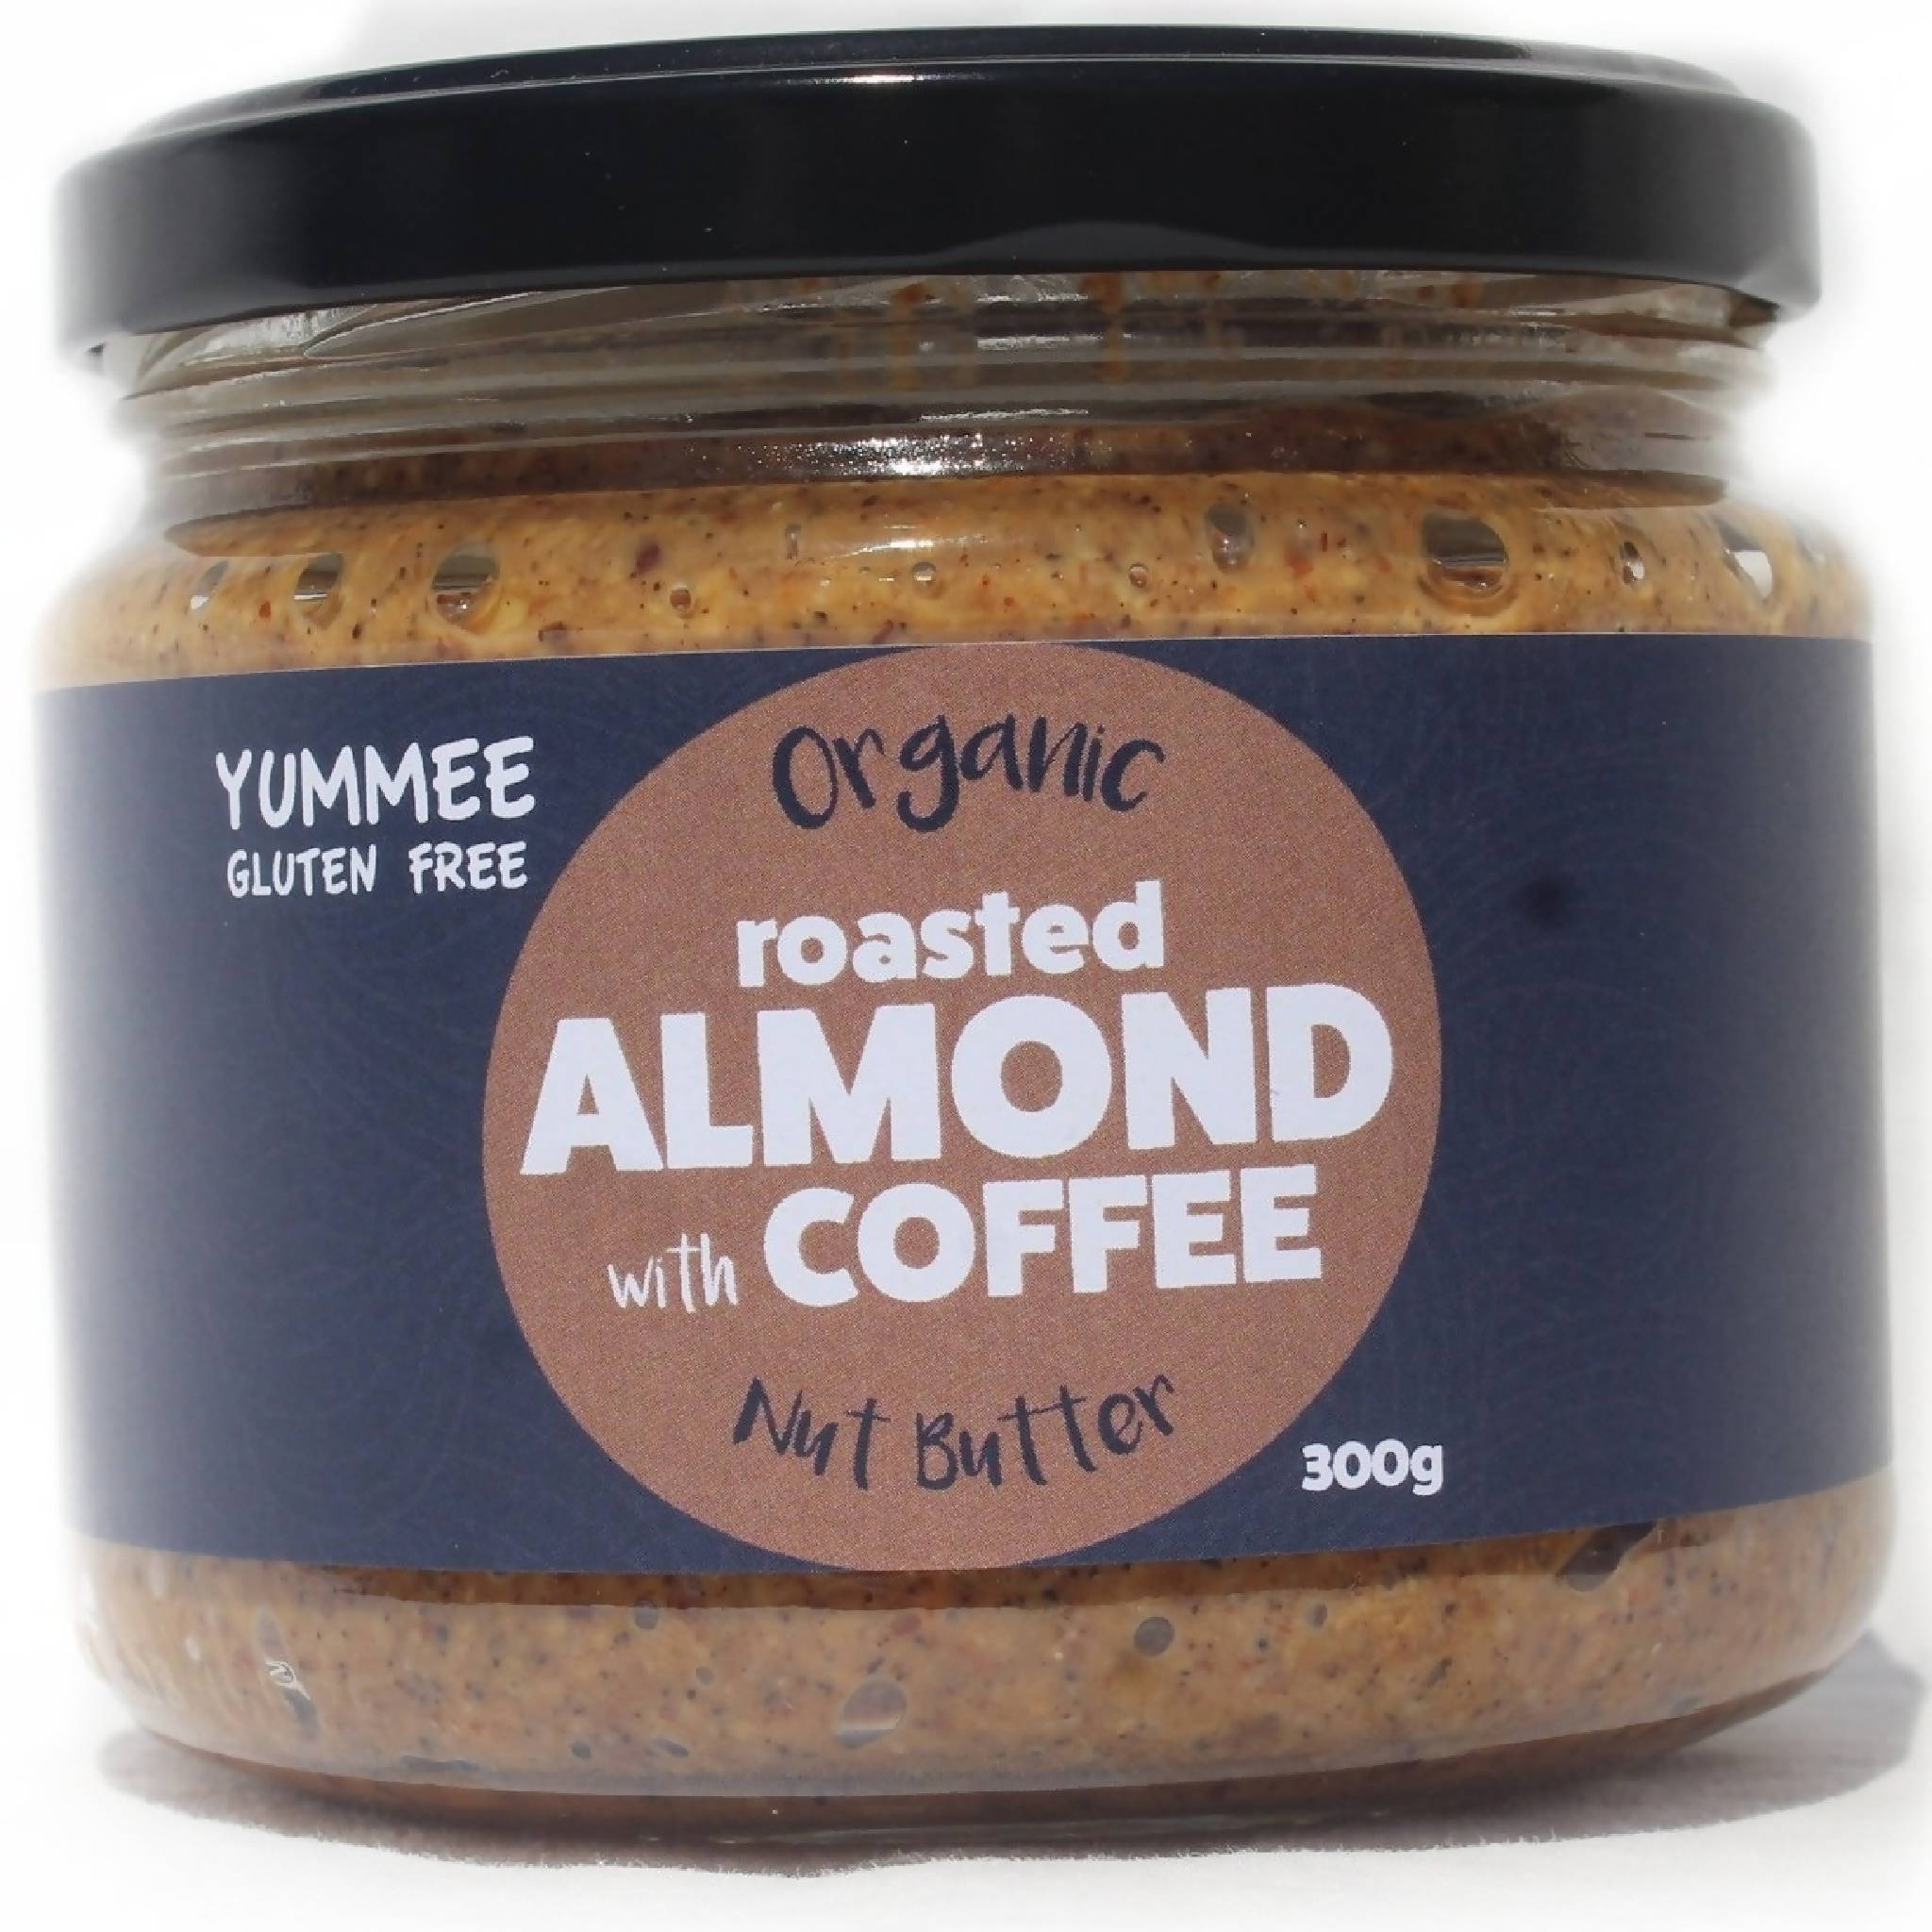 Almond and Coffee Nut Butter